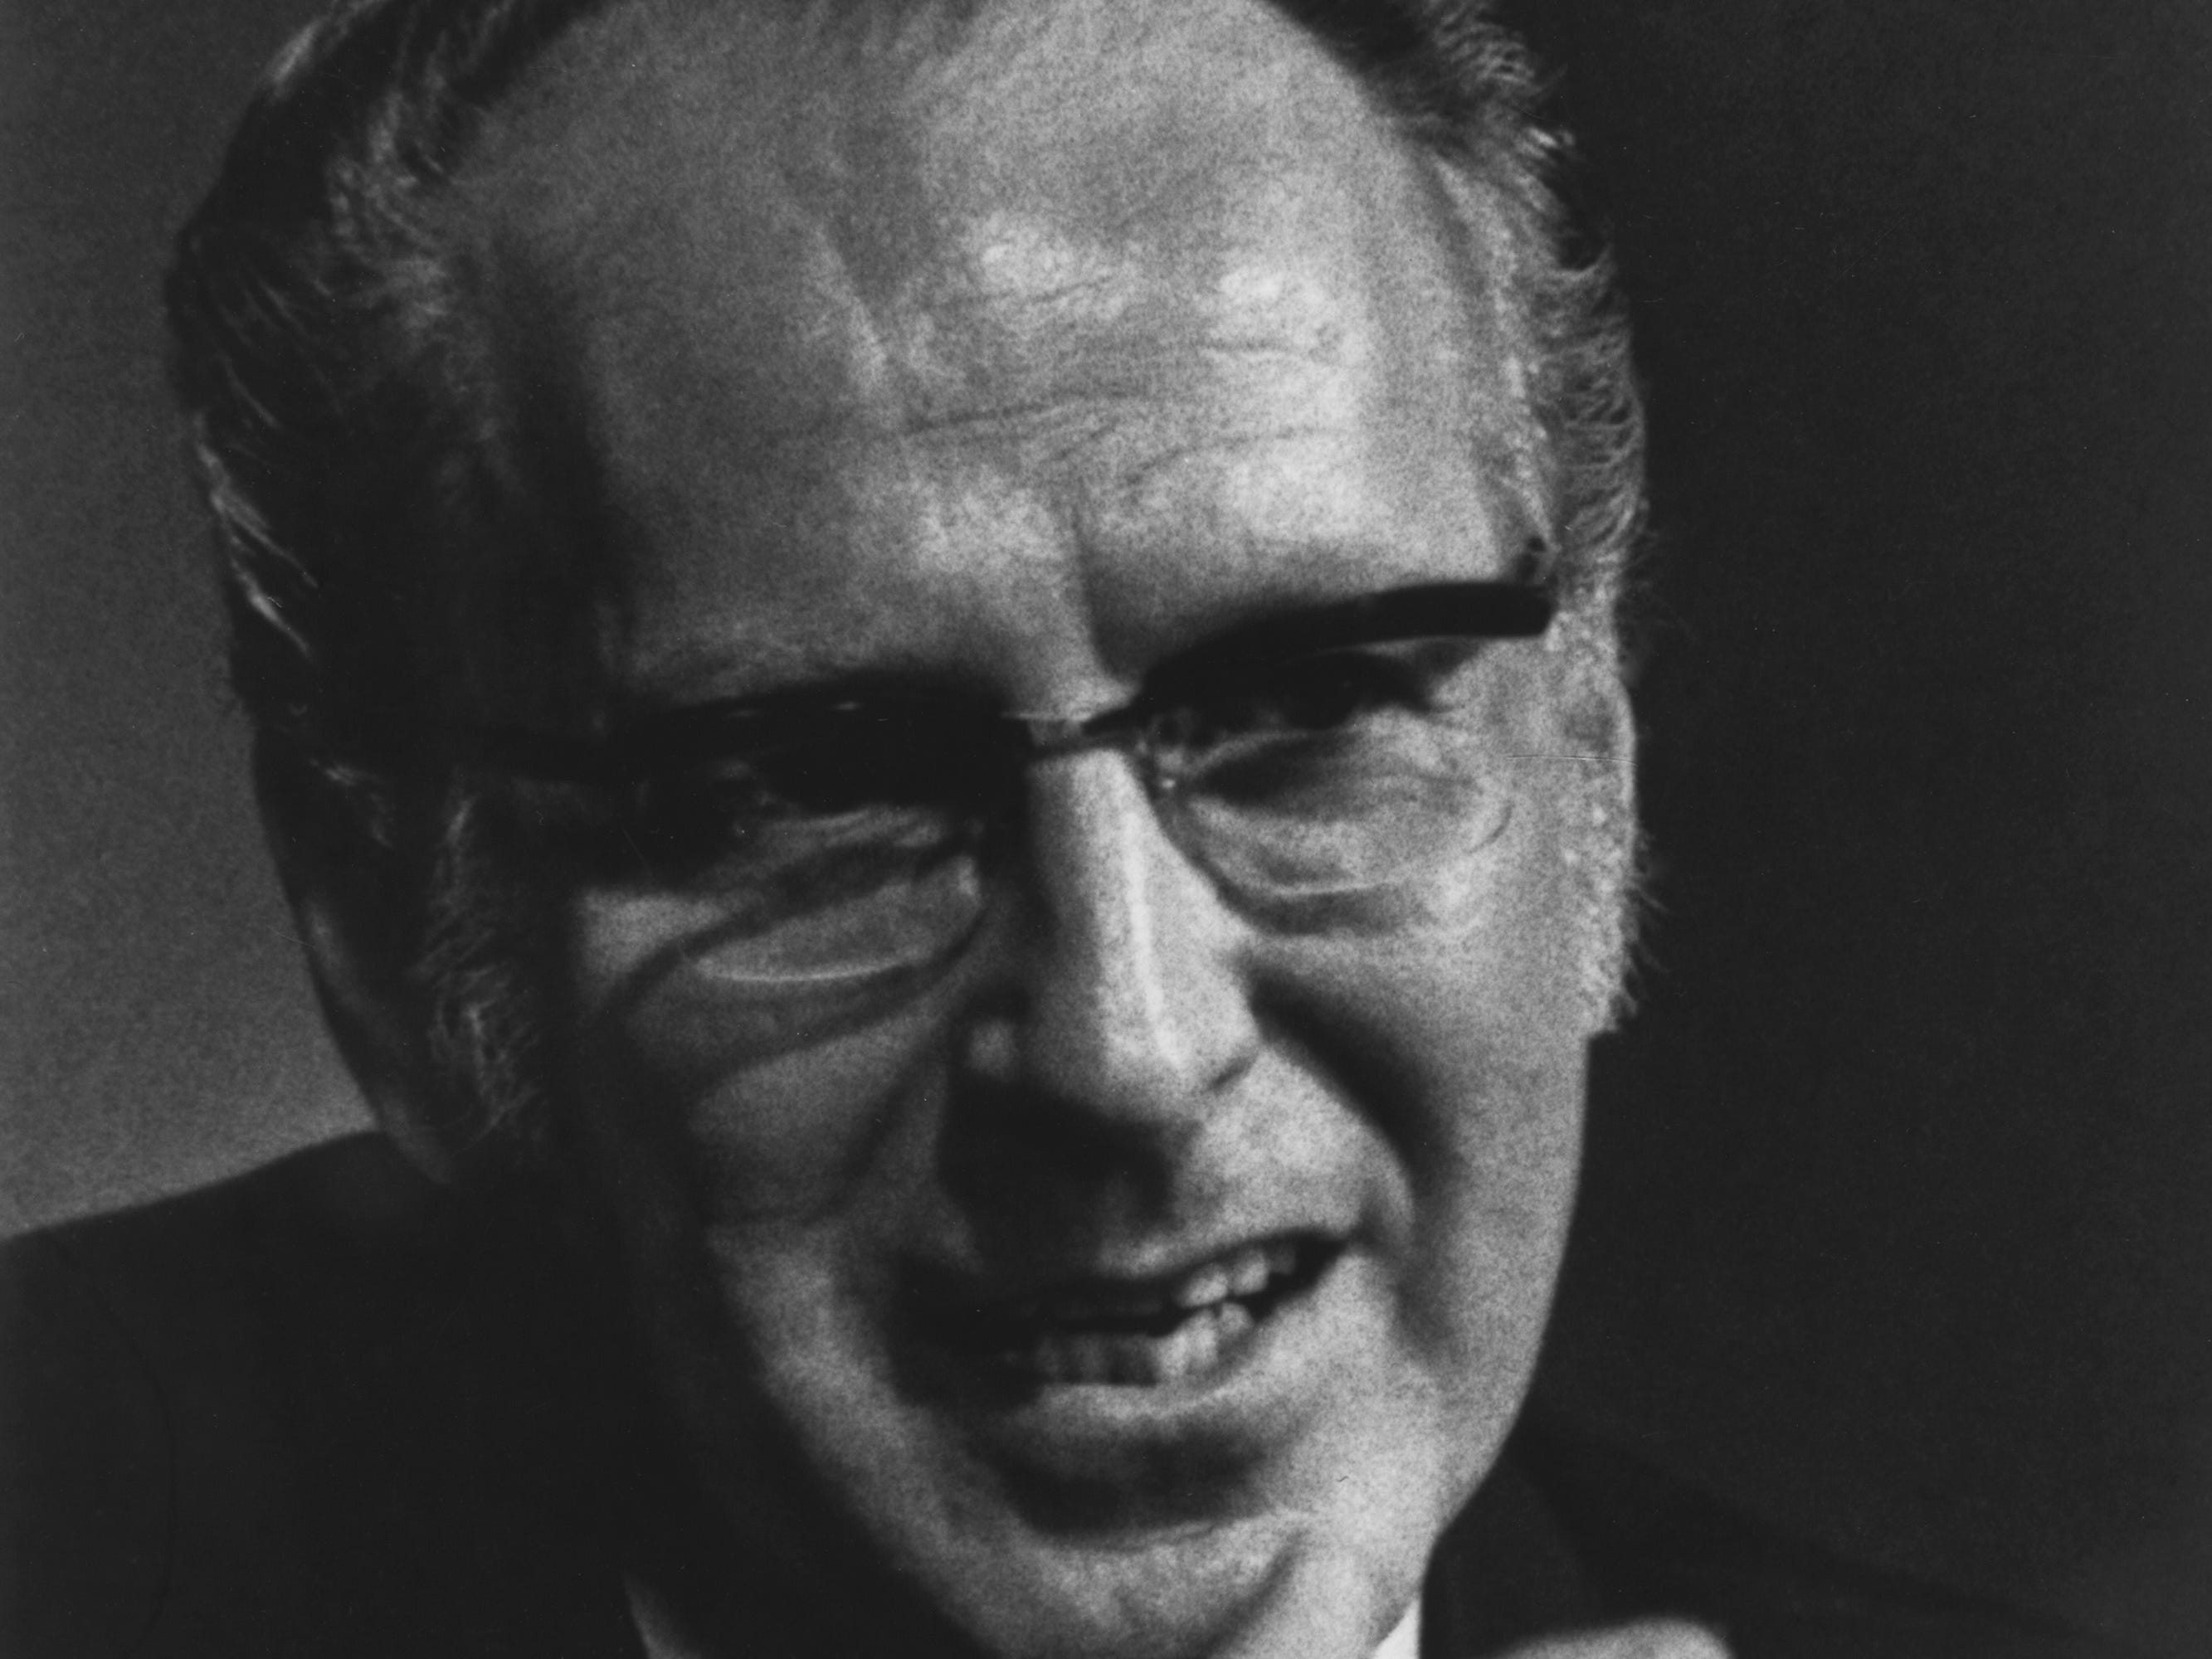 Dr. Glenn A. Olds, a debate and oratory champion in college, was known for his inspirational sermons as a minister.